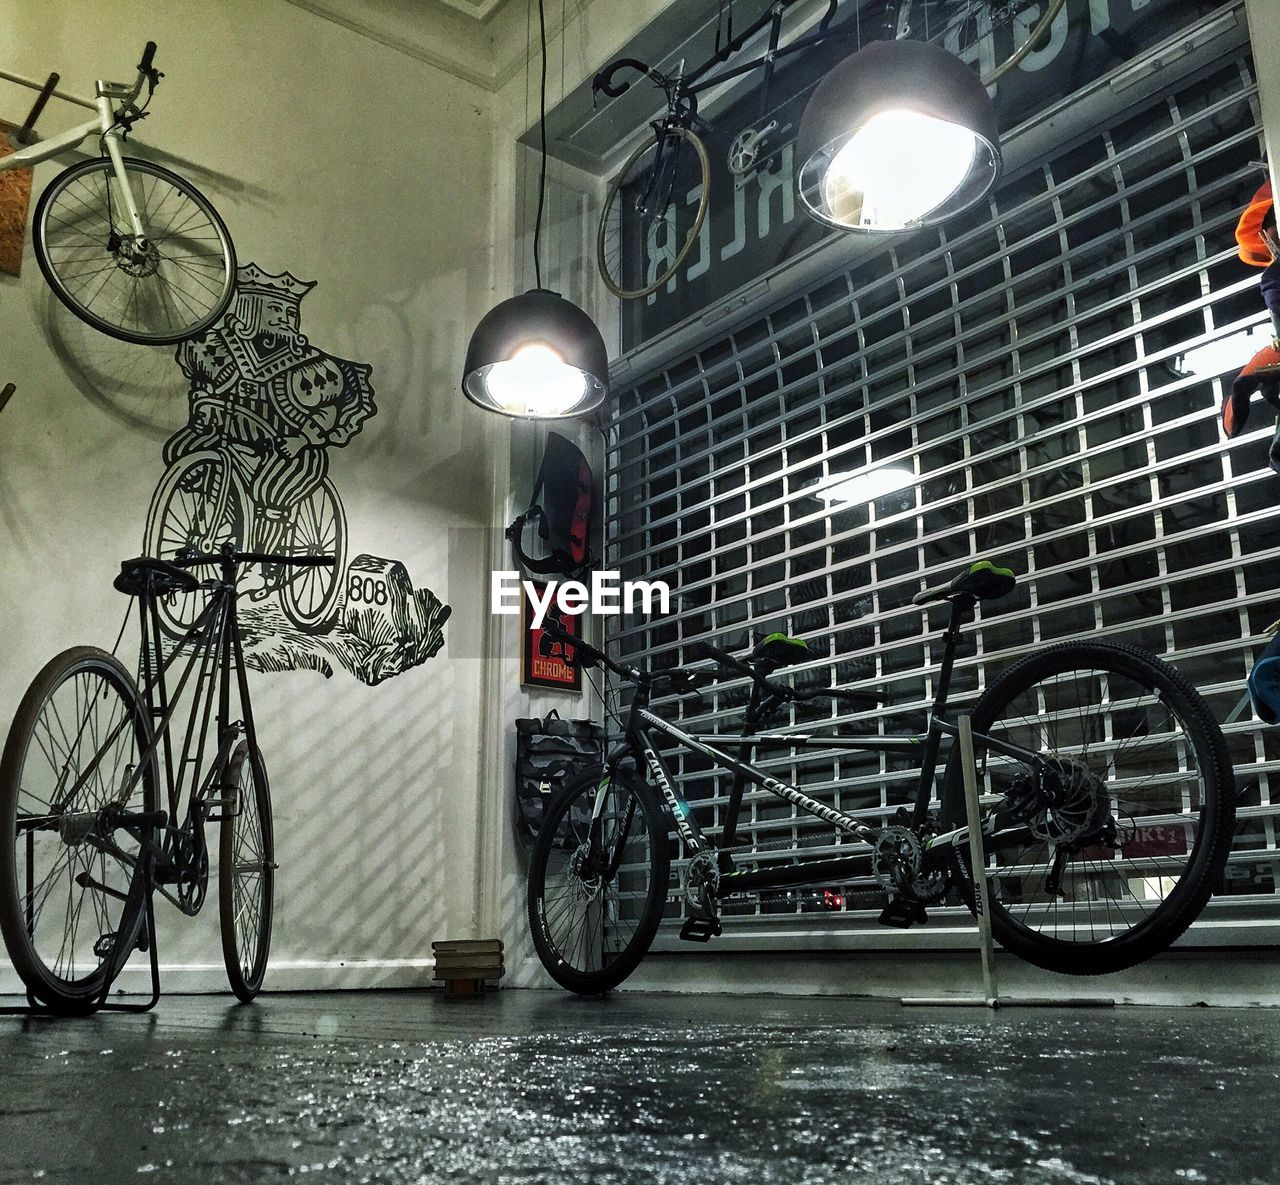 bicycle, illuminated, transportation, indoors, lighting equipment, land vehicle, mode of transport, no people, architecture, stationary, built structure, night